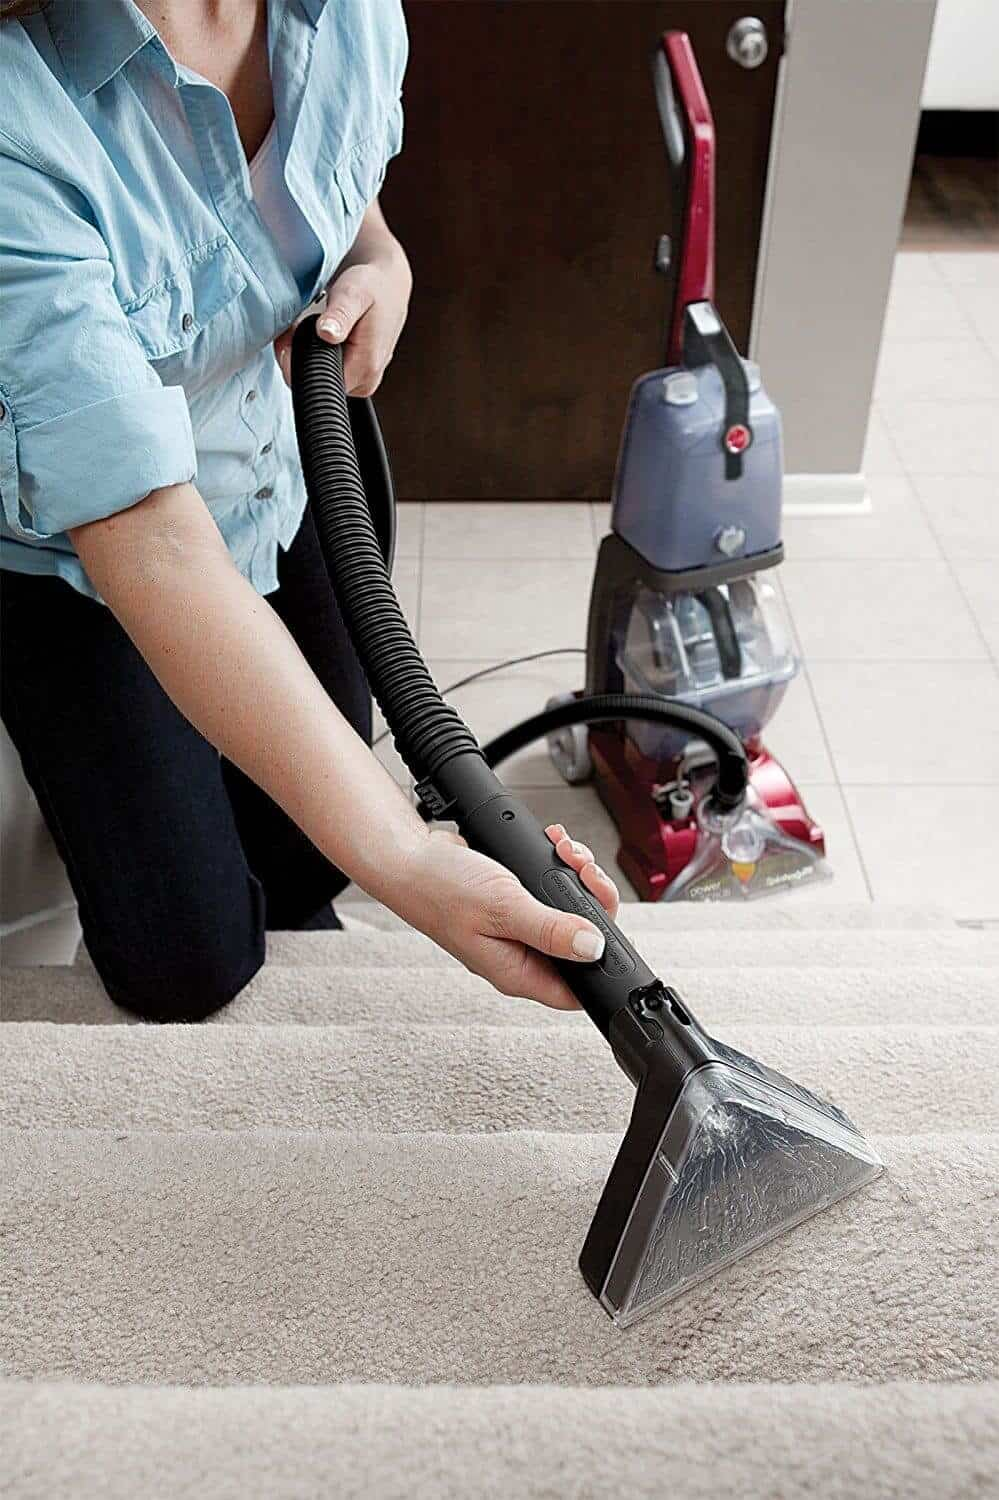 Best Portable Carpet Cleaners -10